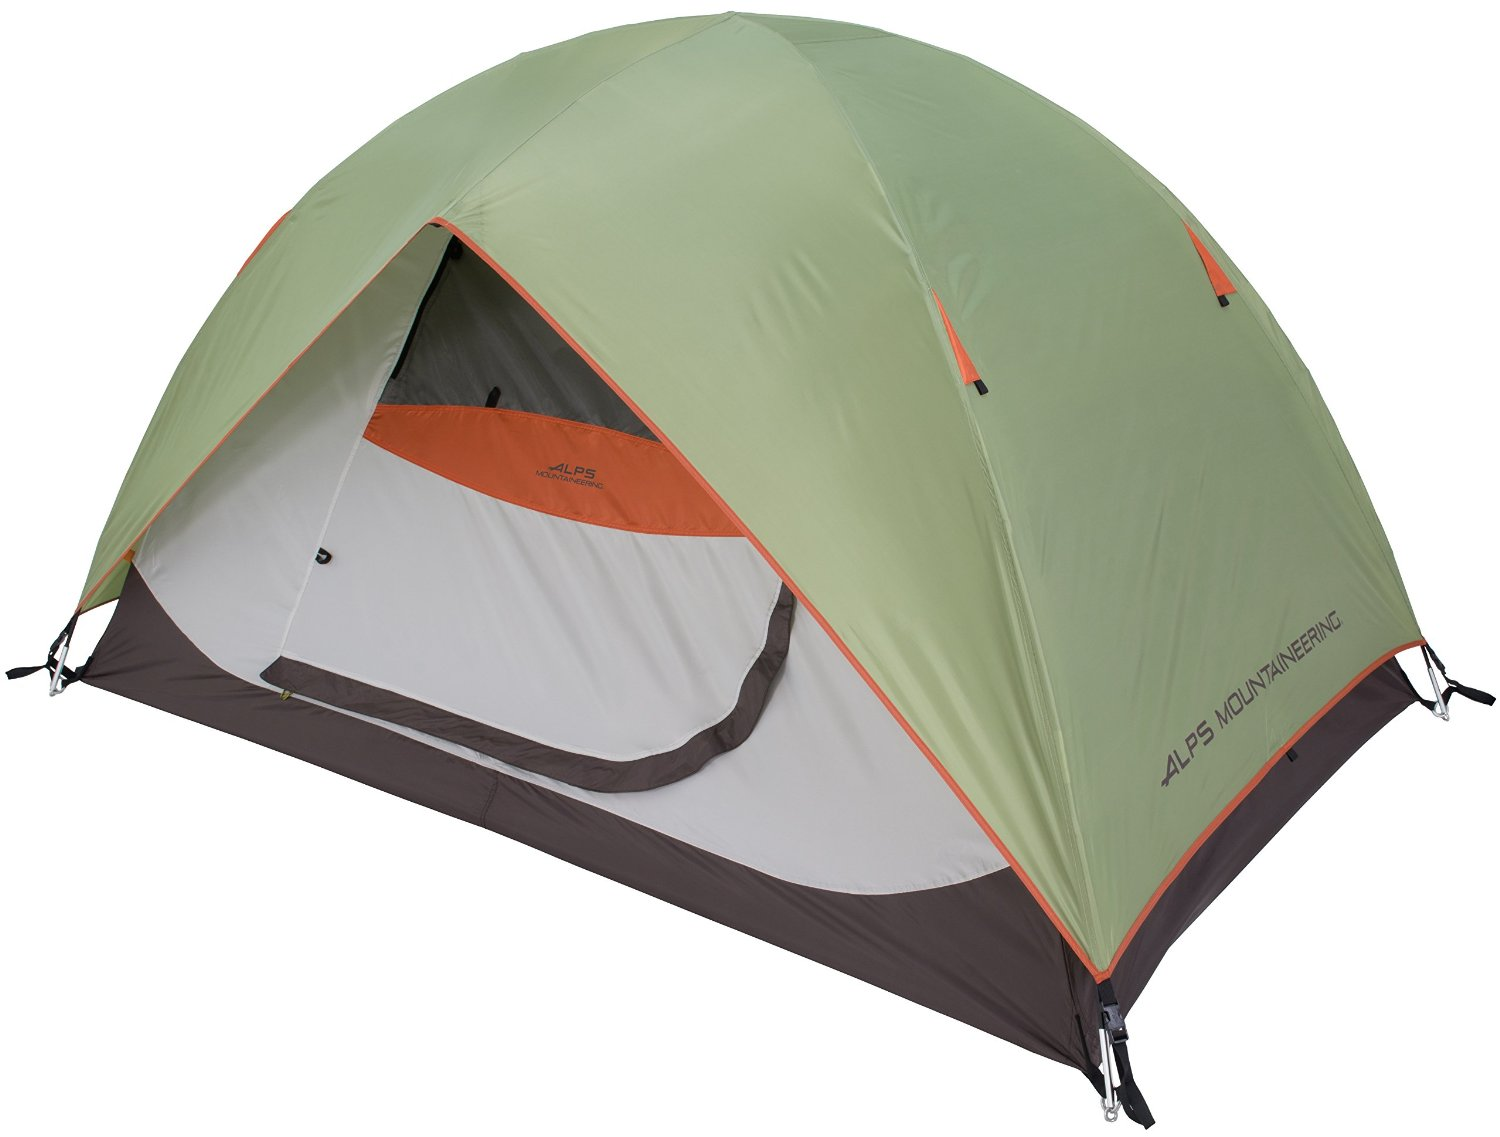 the best lightweight and portable tents for hiking  sc 1 st  toptenmusthave.com & 10 Best Lightweight Backpacking Tent 2017 - Top 10 Must Have